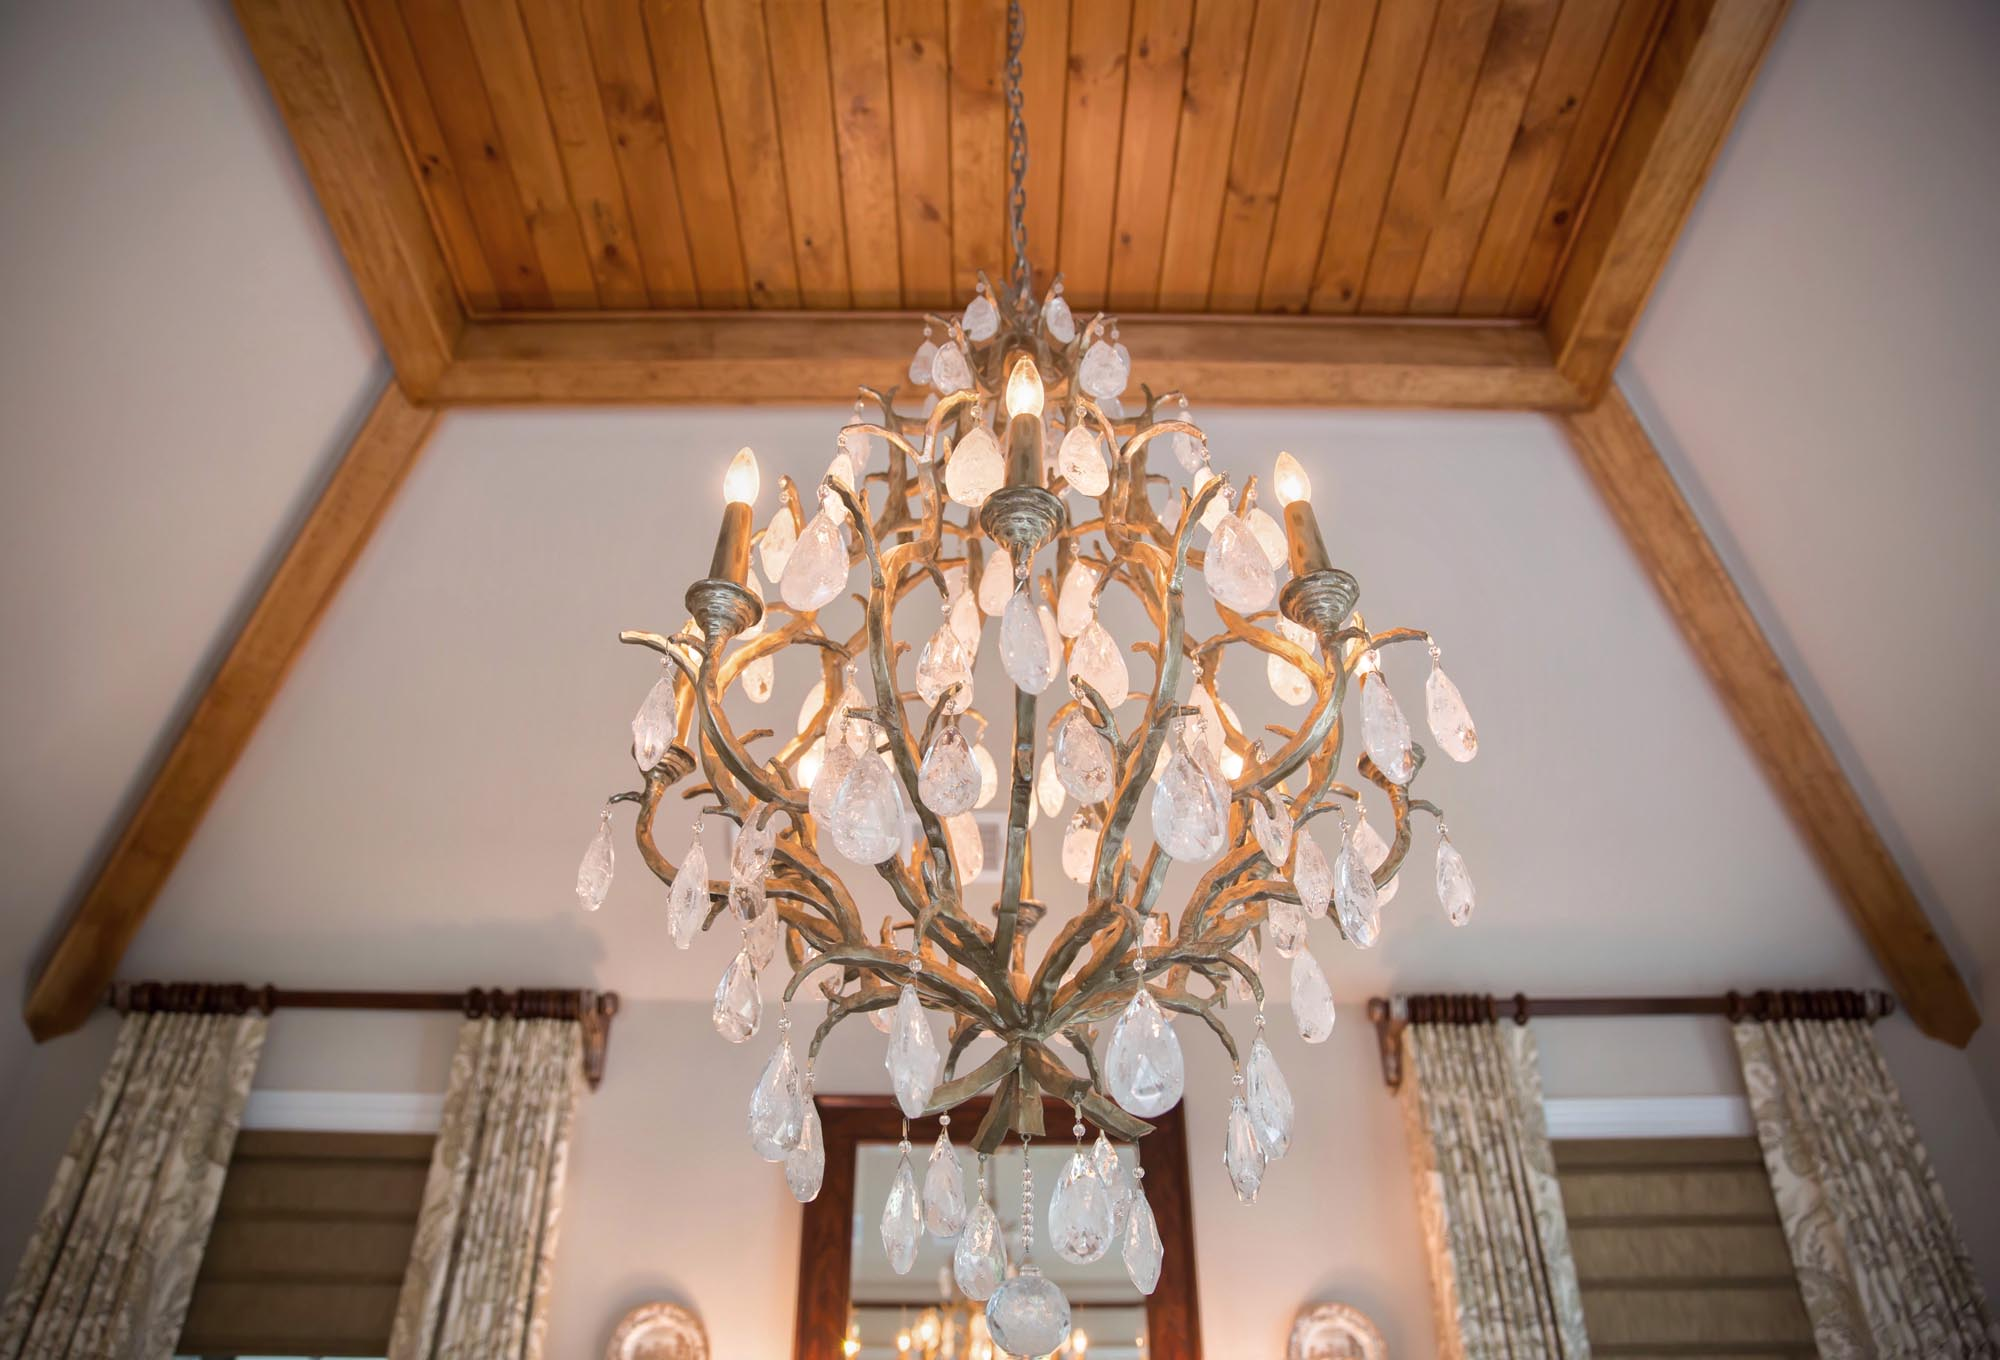 Rock crystal chandelier with planked wood ceiling in dining room